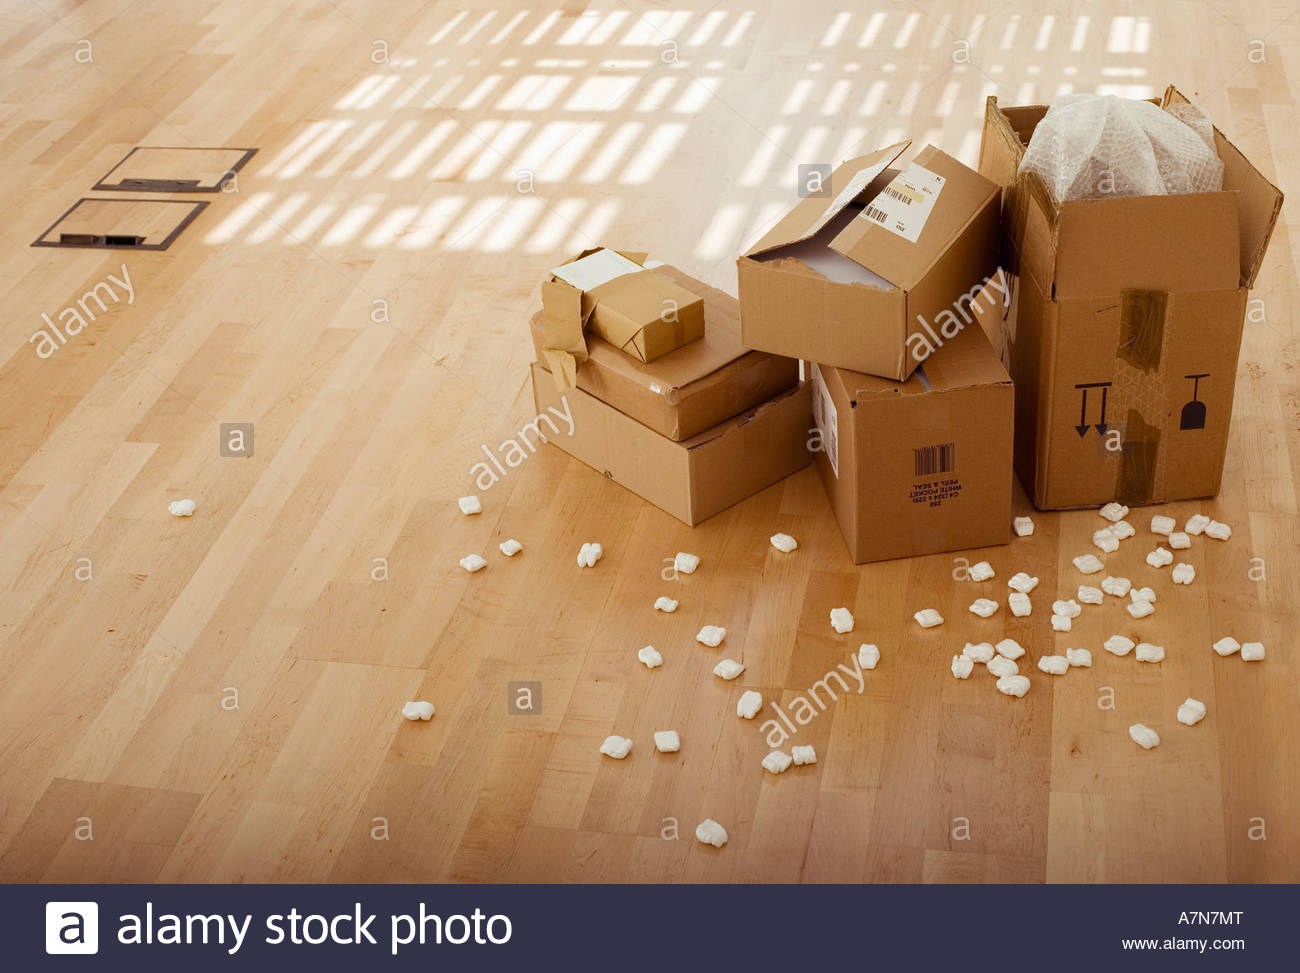 Stack of cardboard boxes beside packing foam on wooden floor